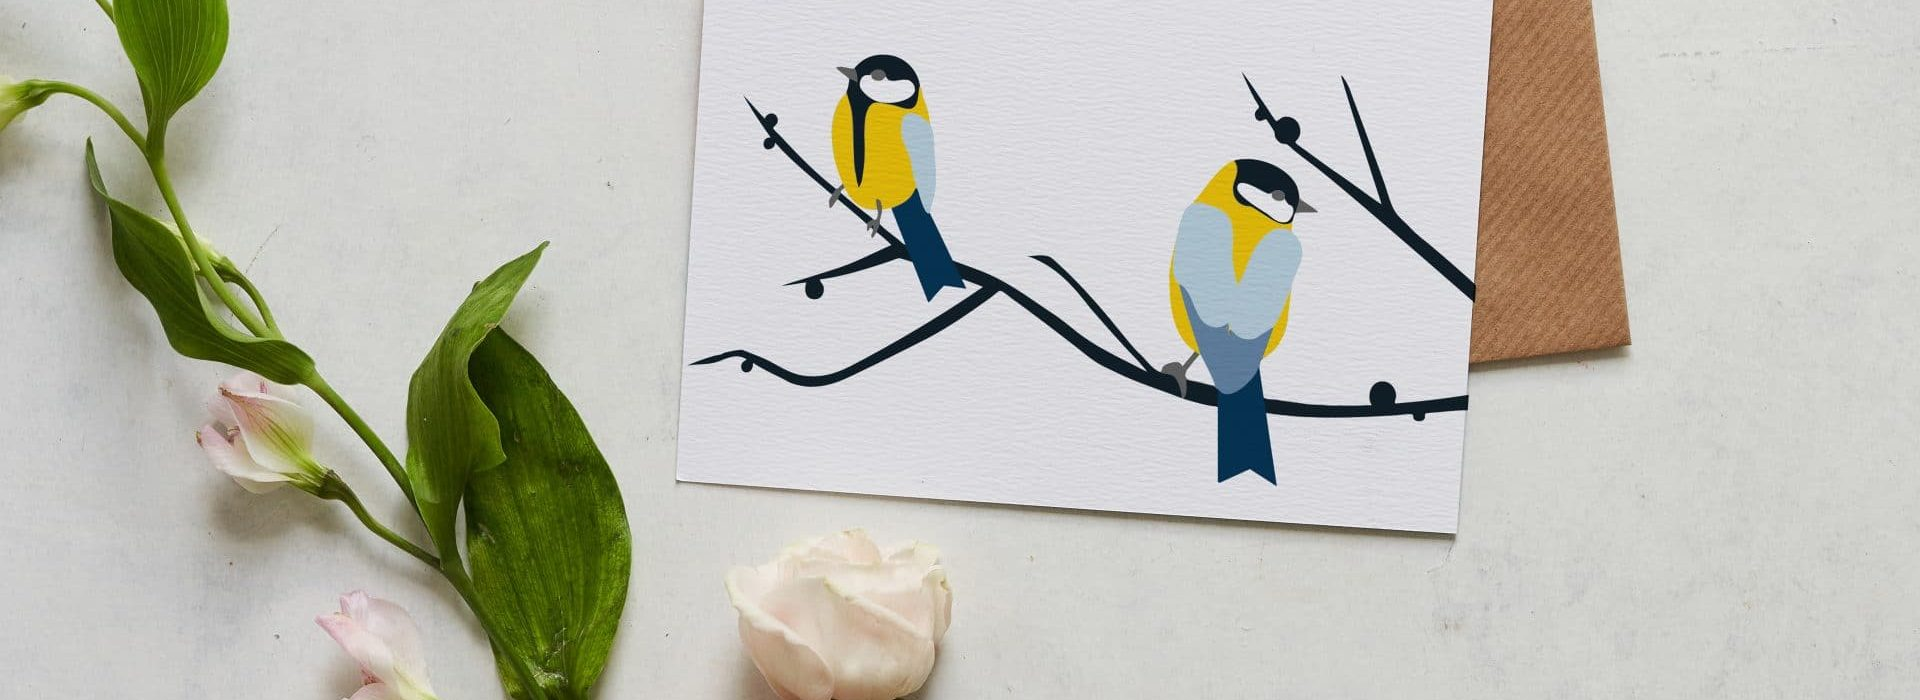 Juneberry and Bird greeting card designed by Lorna Syson